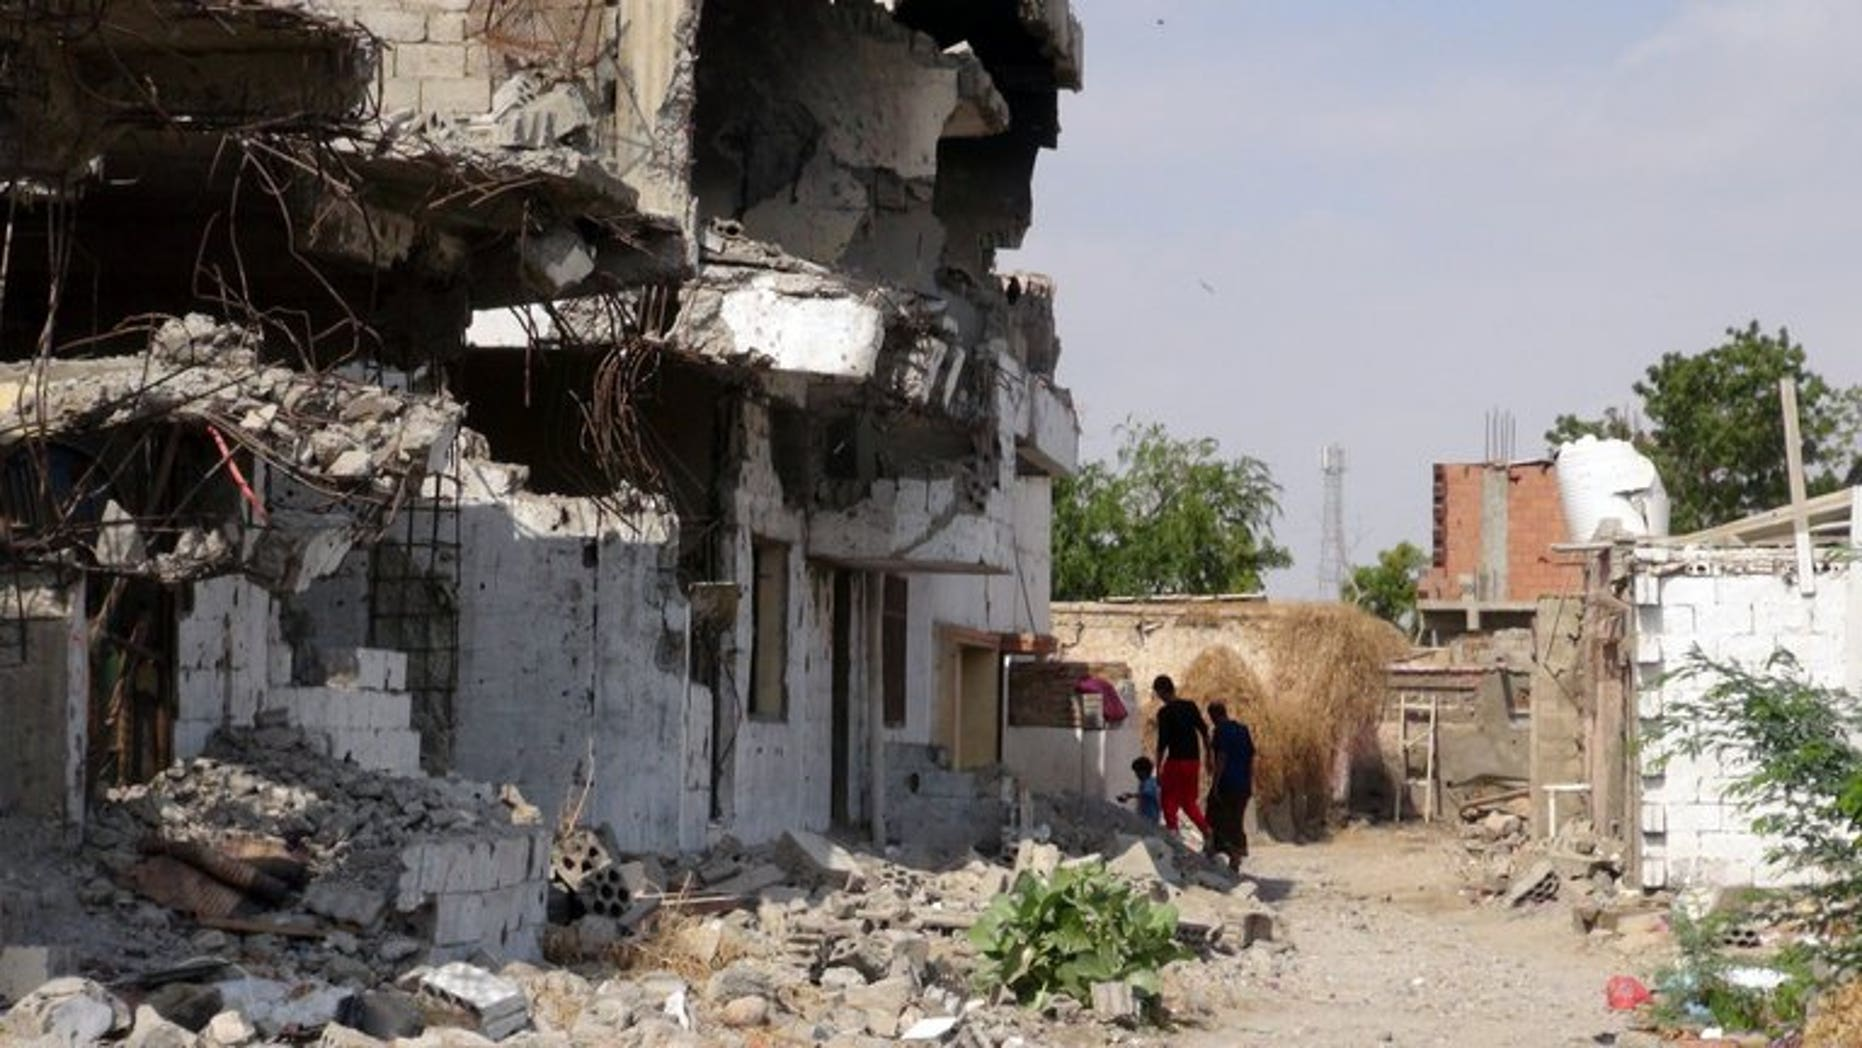 Yemenis walk past destroyed buildings in Zinjibar on December 5, 2012. Nasir al-Wuhayshi, a former aide to Al-Qaeda's late founder Osama bin Laden, tunnelled his way out of prison to become head of the Yemen-based Al-Qaeda in the Arabian Peninsula.